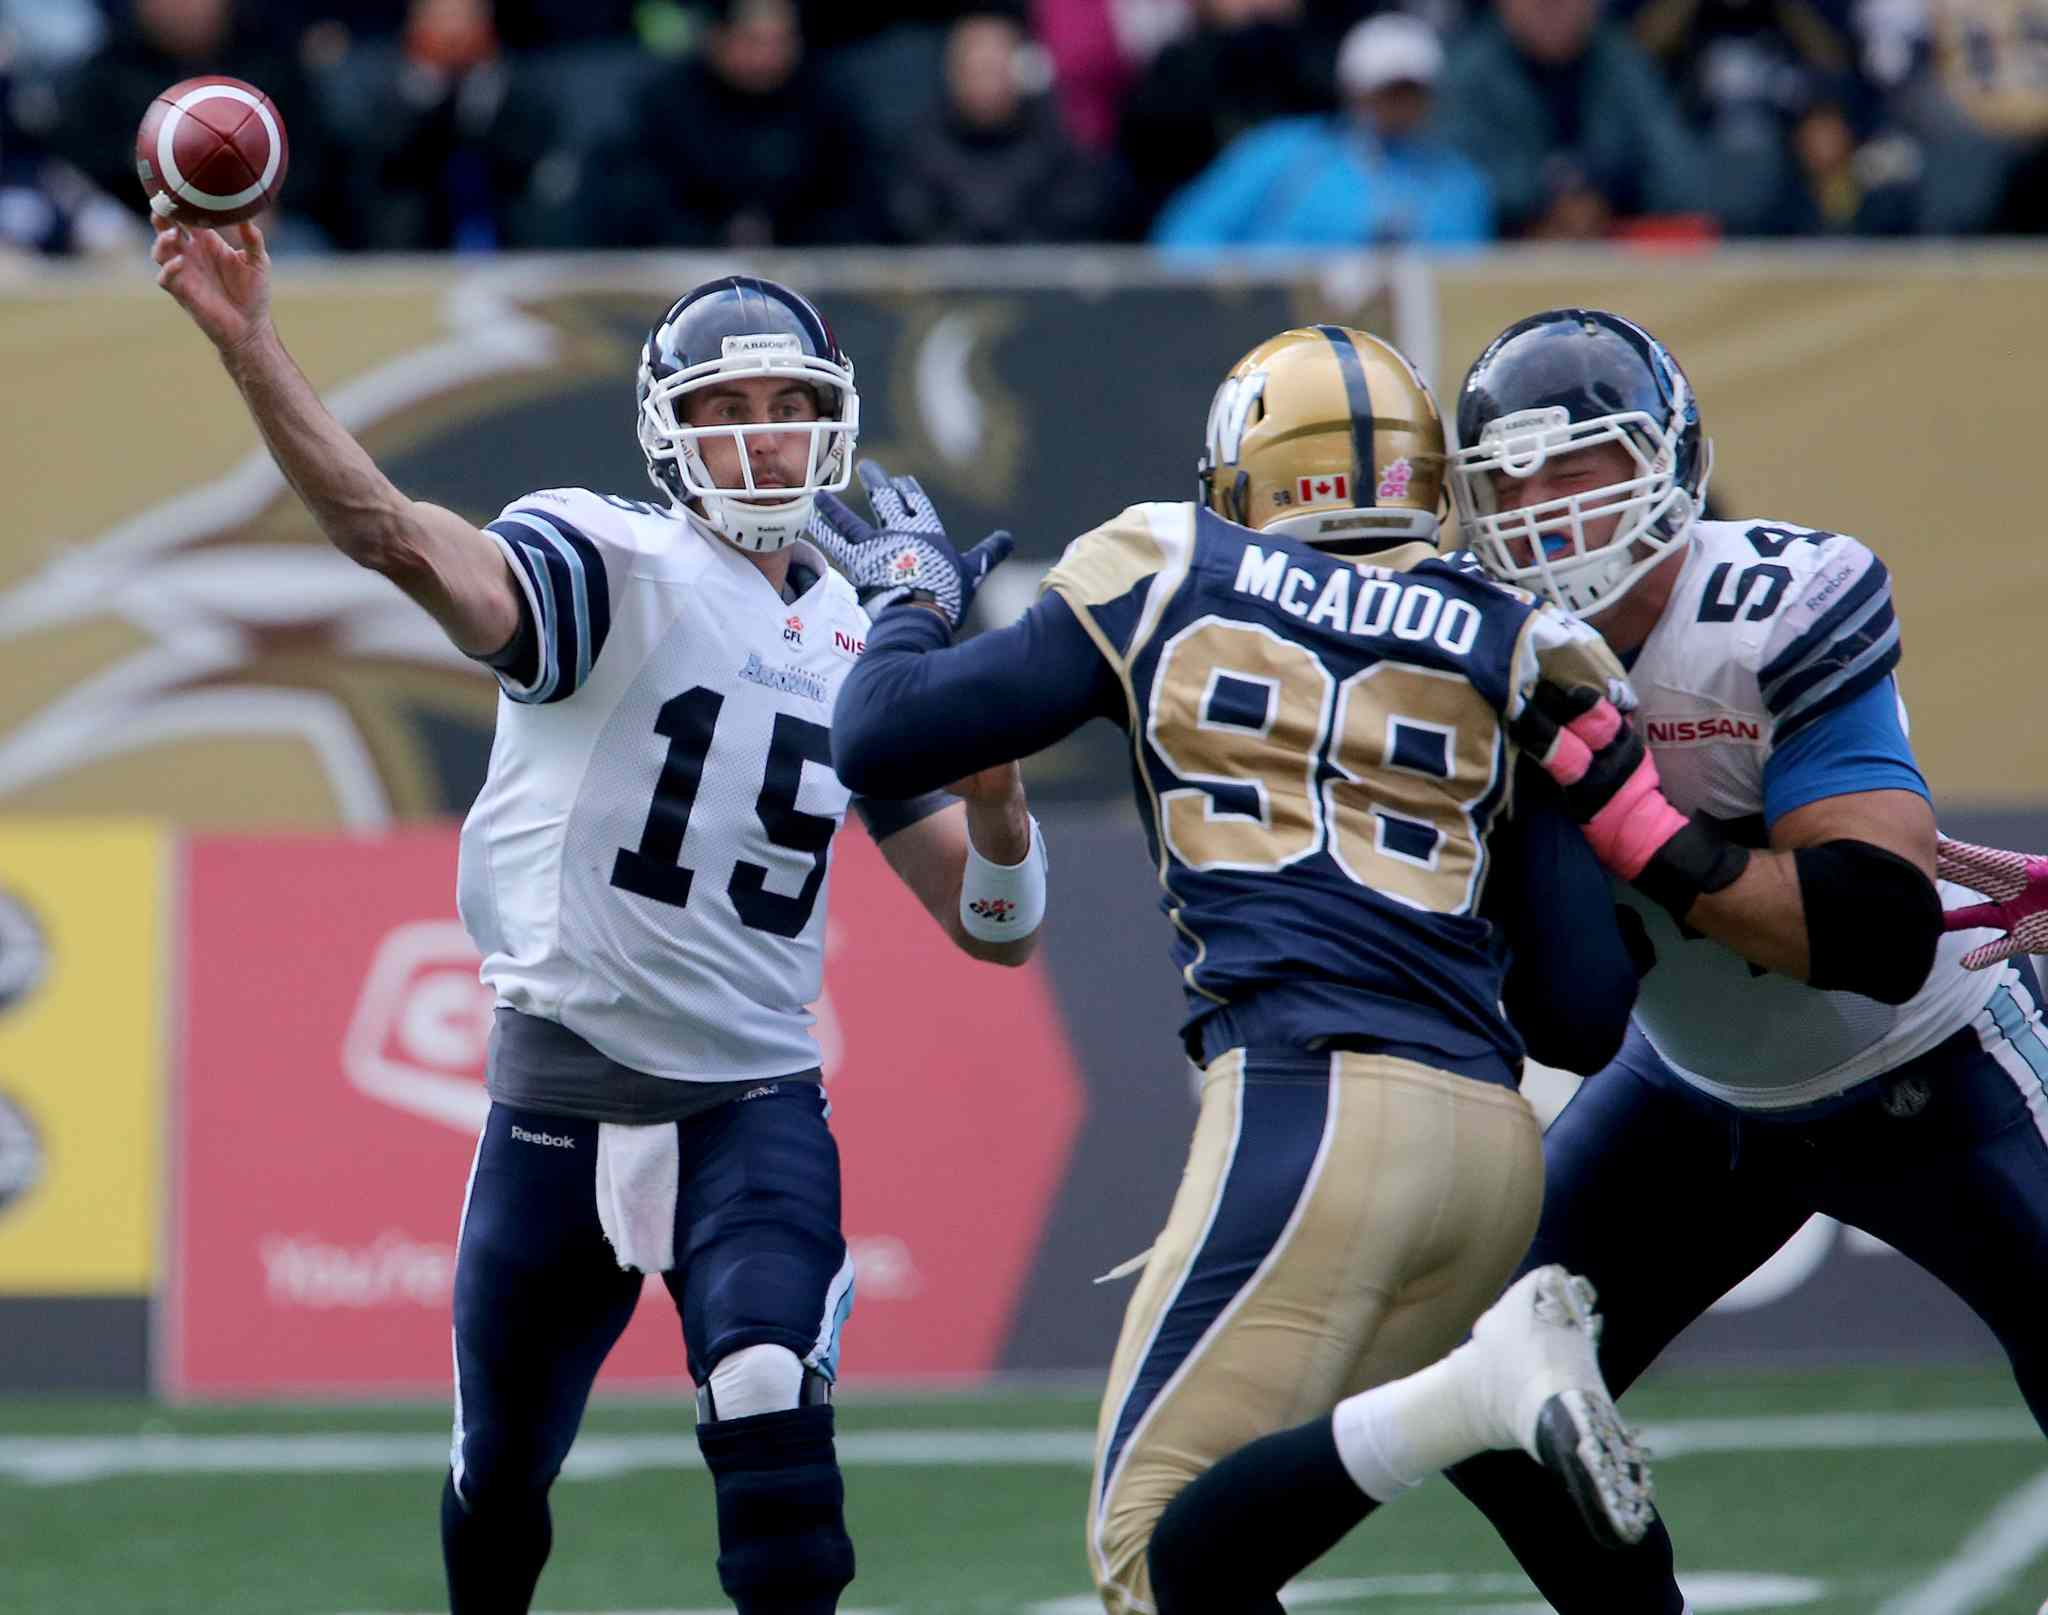 Toronto Argonauts' quarterback Ricky Ray (15) passes a ball that would be knocked down by Winnipeg Blue Bombers' Michael McAdoo (98) during the second half.